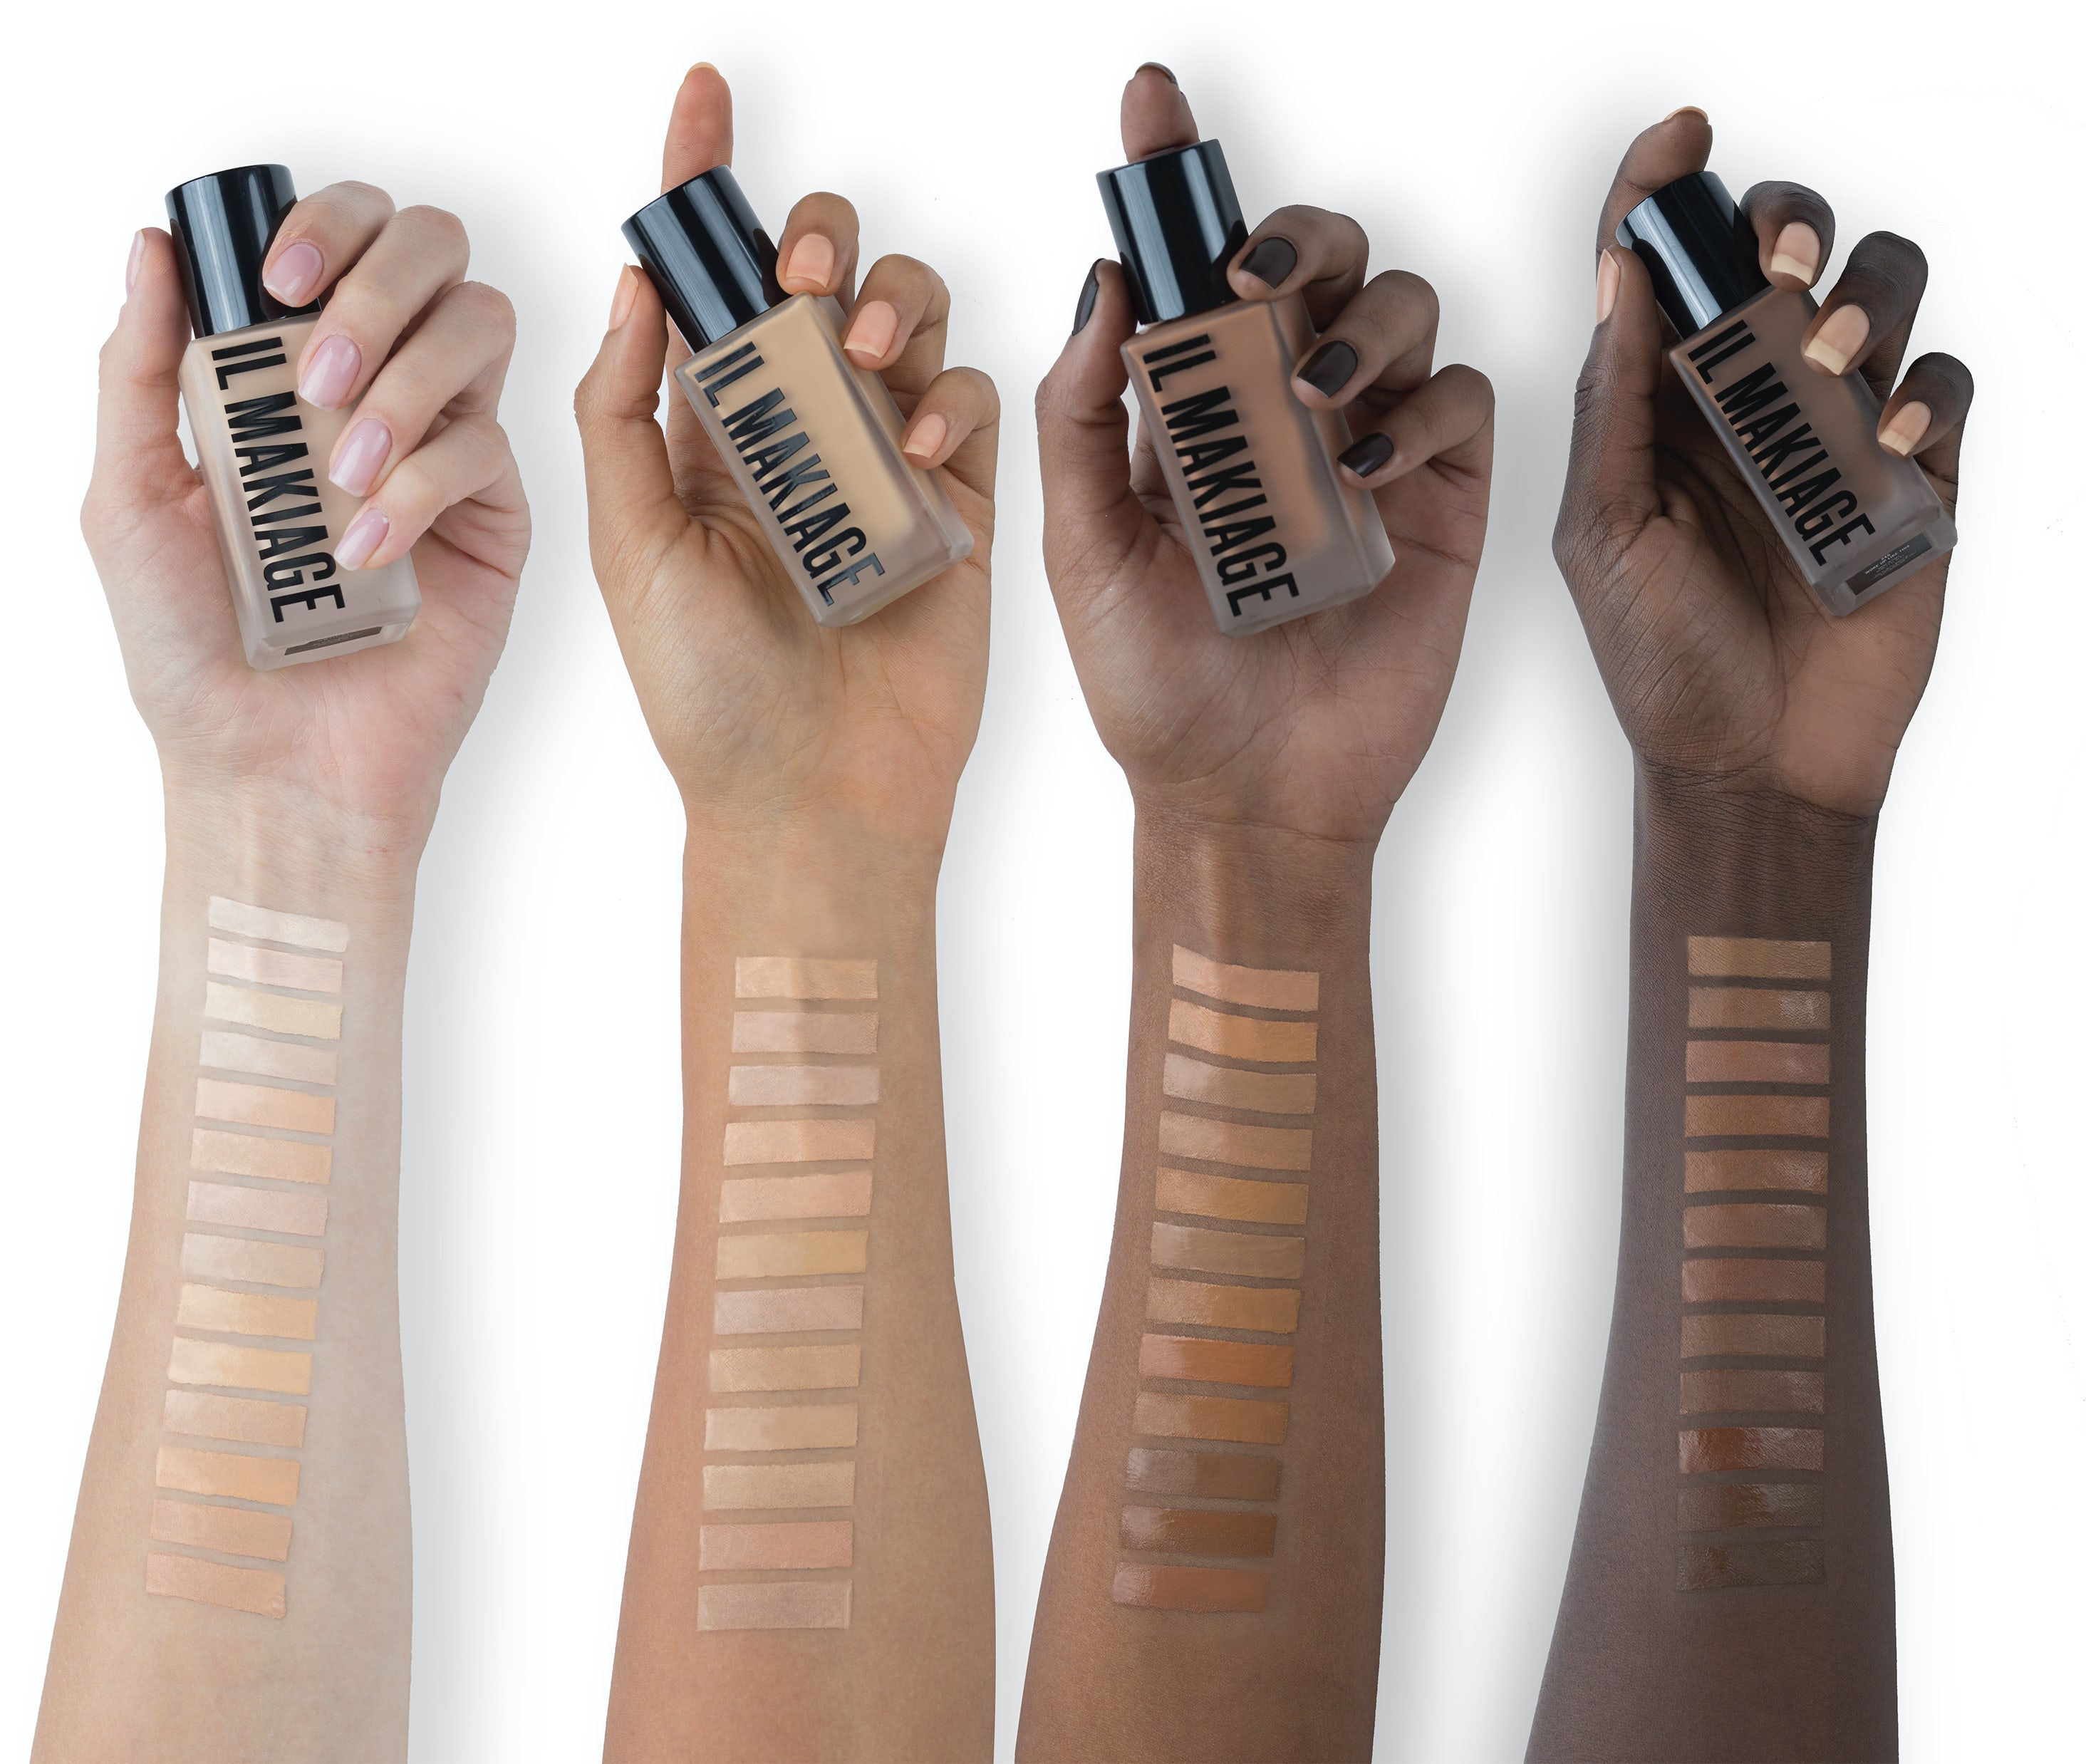 Beauty's Inclusivity Movement Has Sparked a Shade-Matching Arms Race